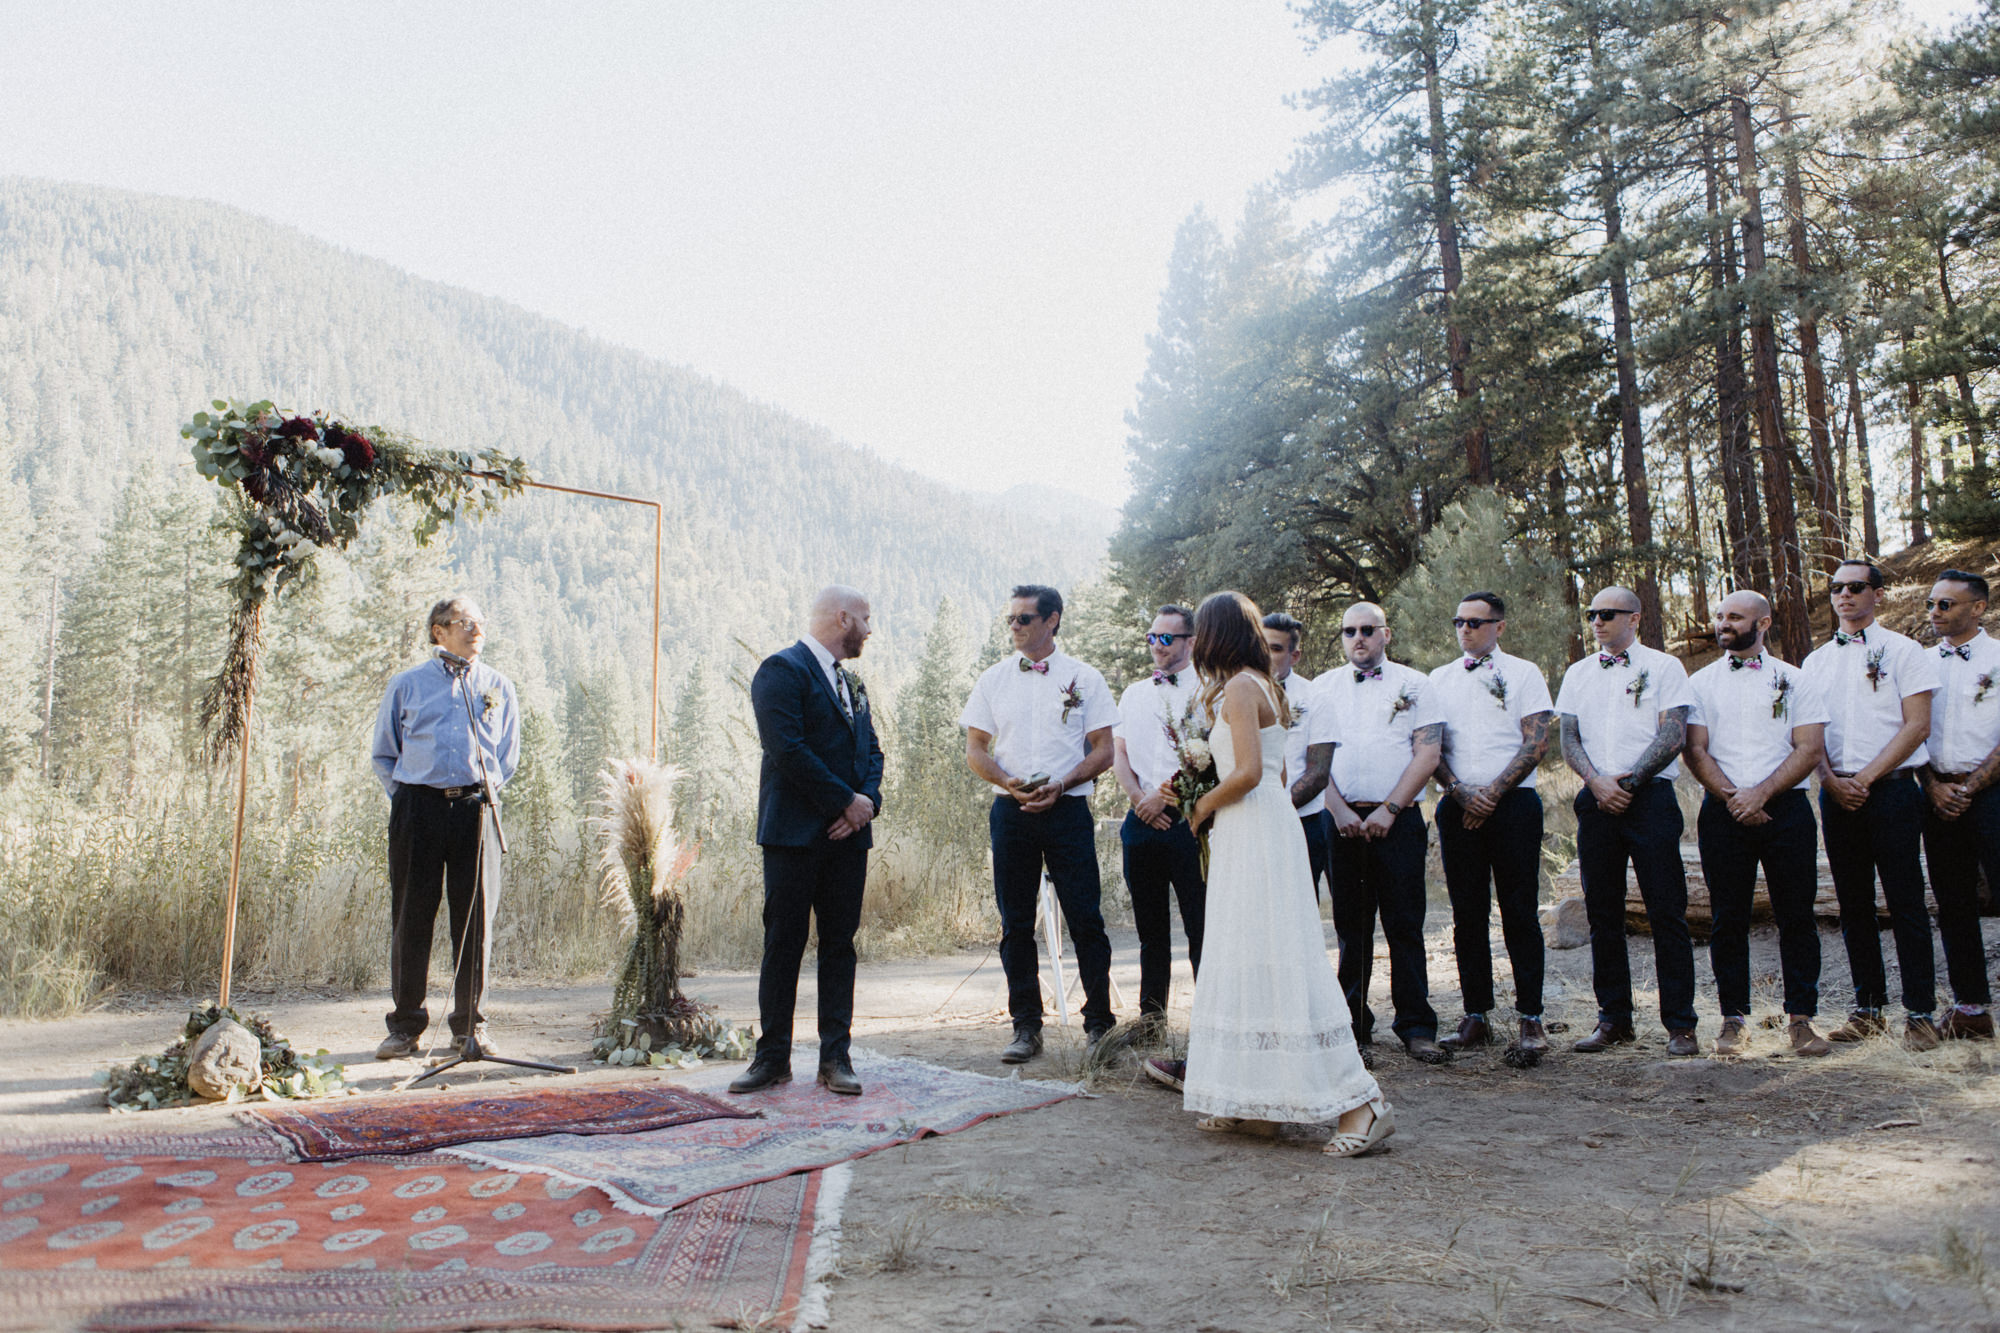 YMCA camp round meadow wedding -69.jpg